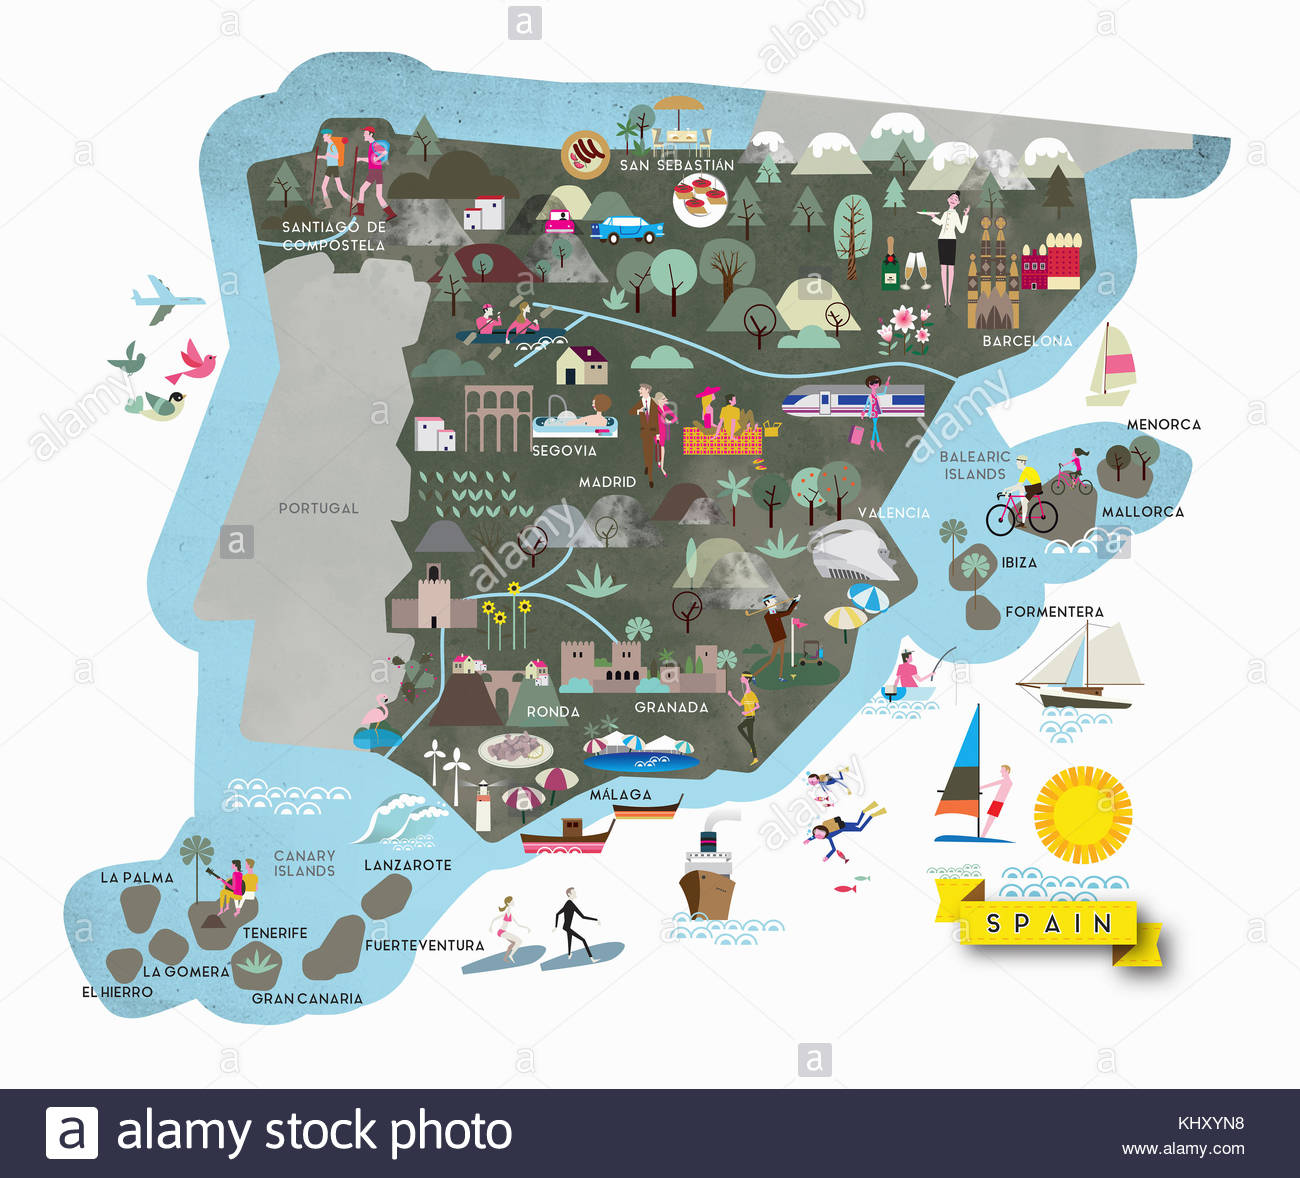 Illustrated tourism map of leisure activities in Spain Stock Photo